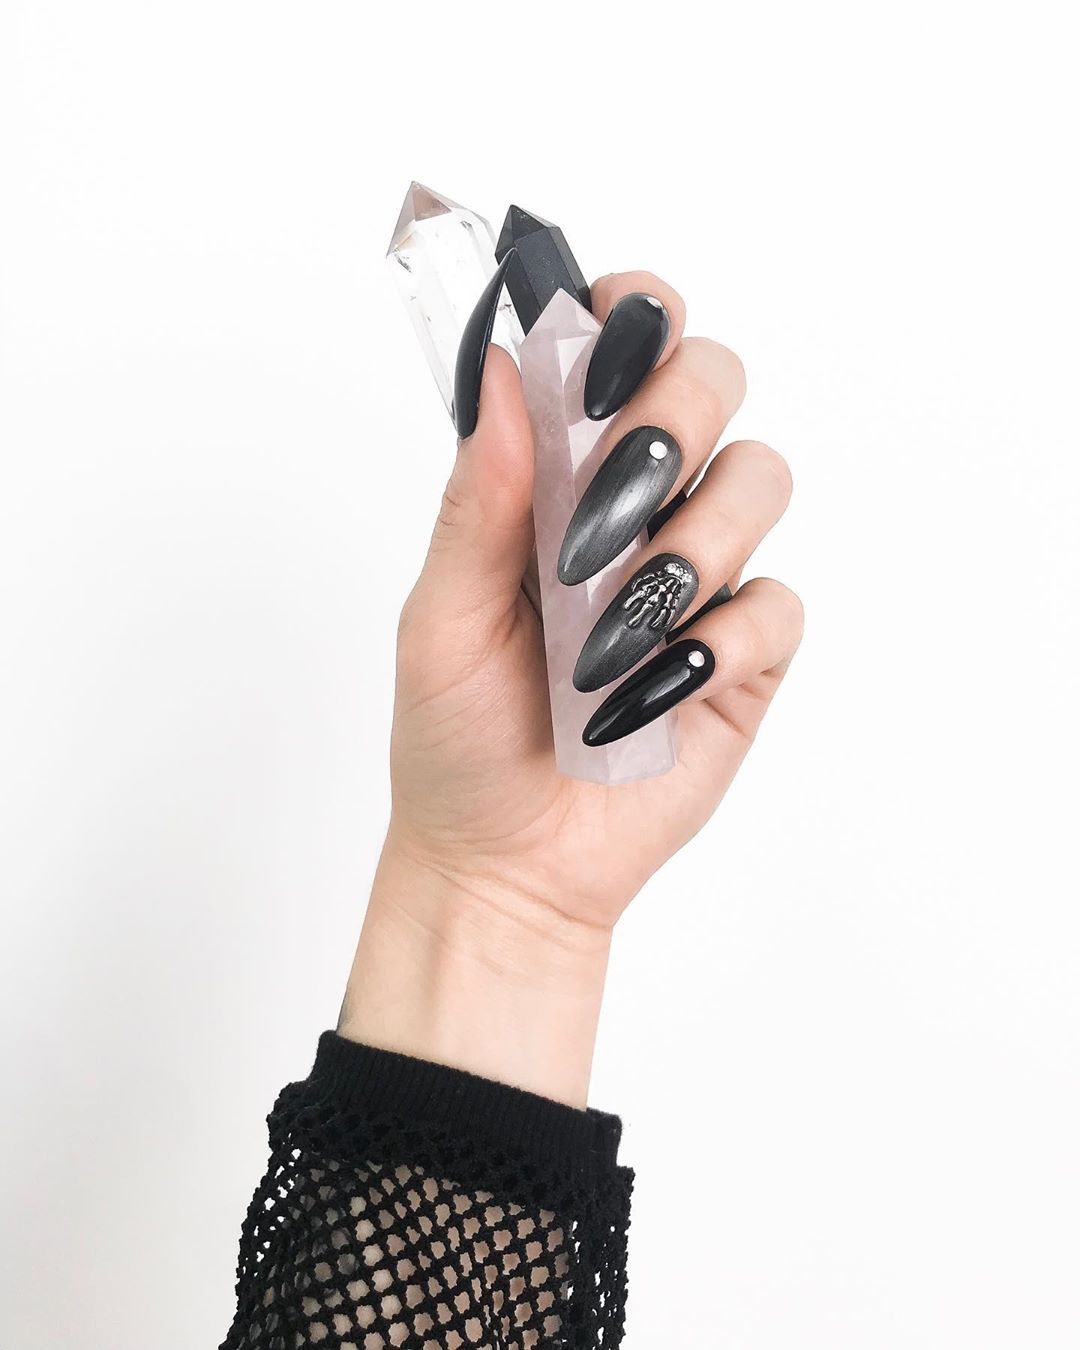 stiletto nails ideas | goth matte black stiletto nails | halloween stiletto nails